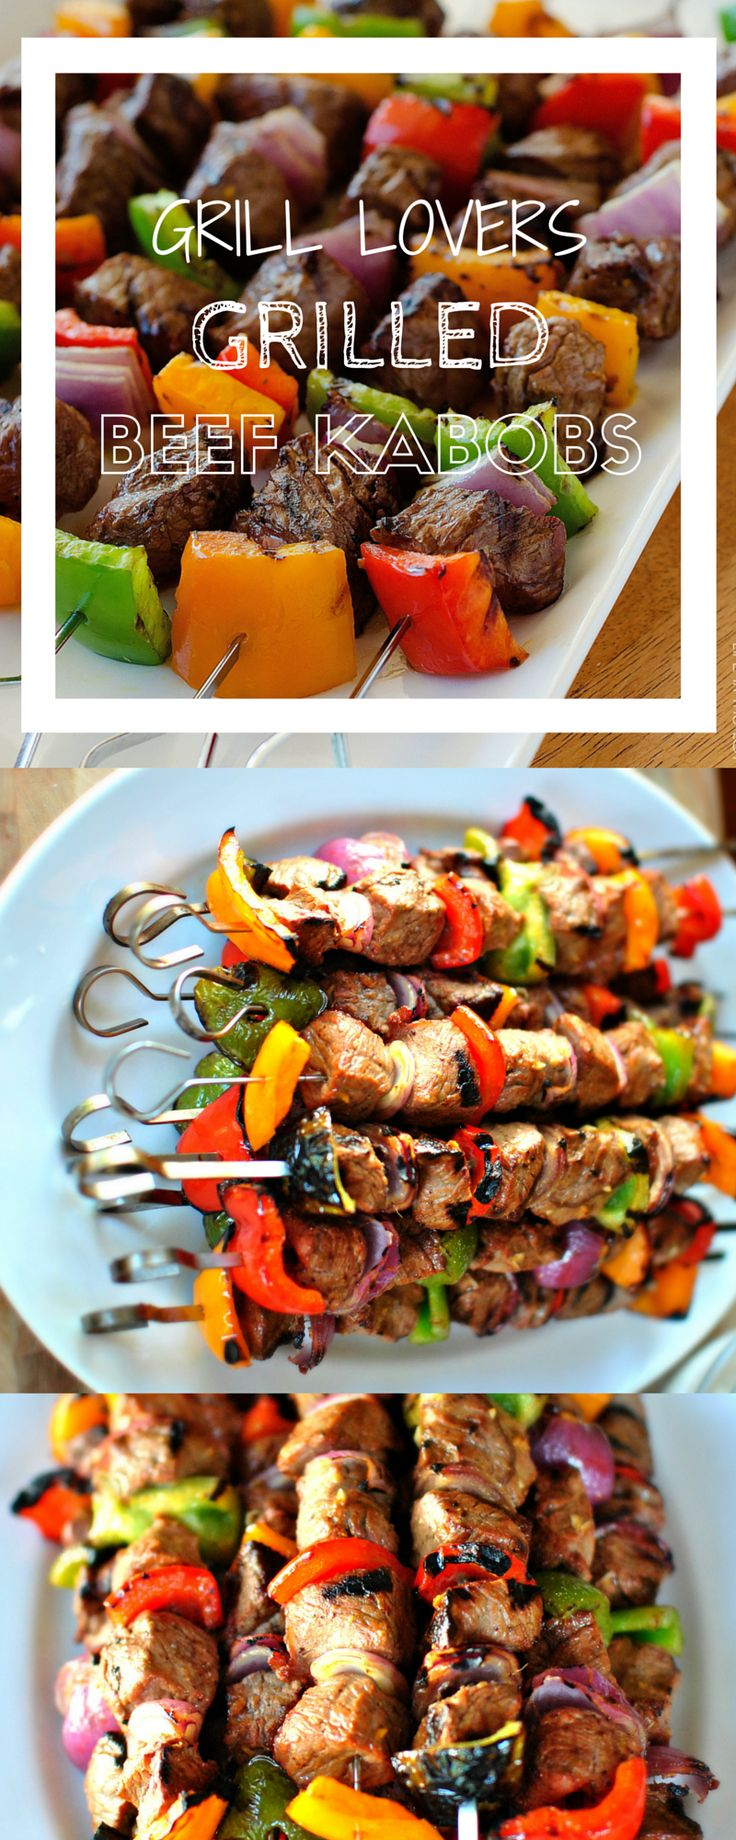 Grill Lovers' Amazing Grilled Beef Kabobs Recipe   #recipes #foodporn #foodie #grilling